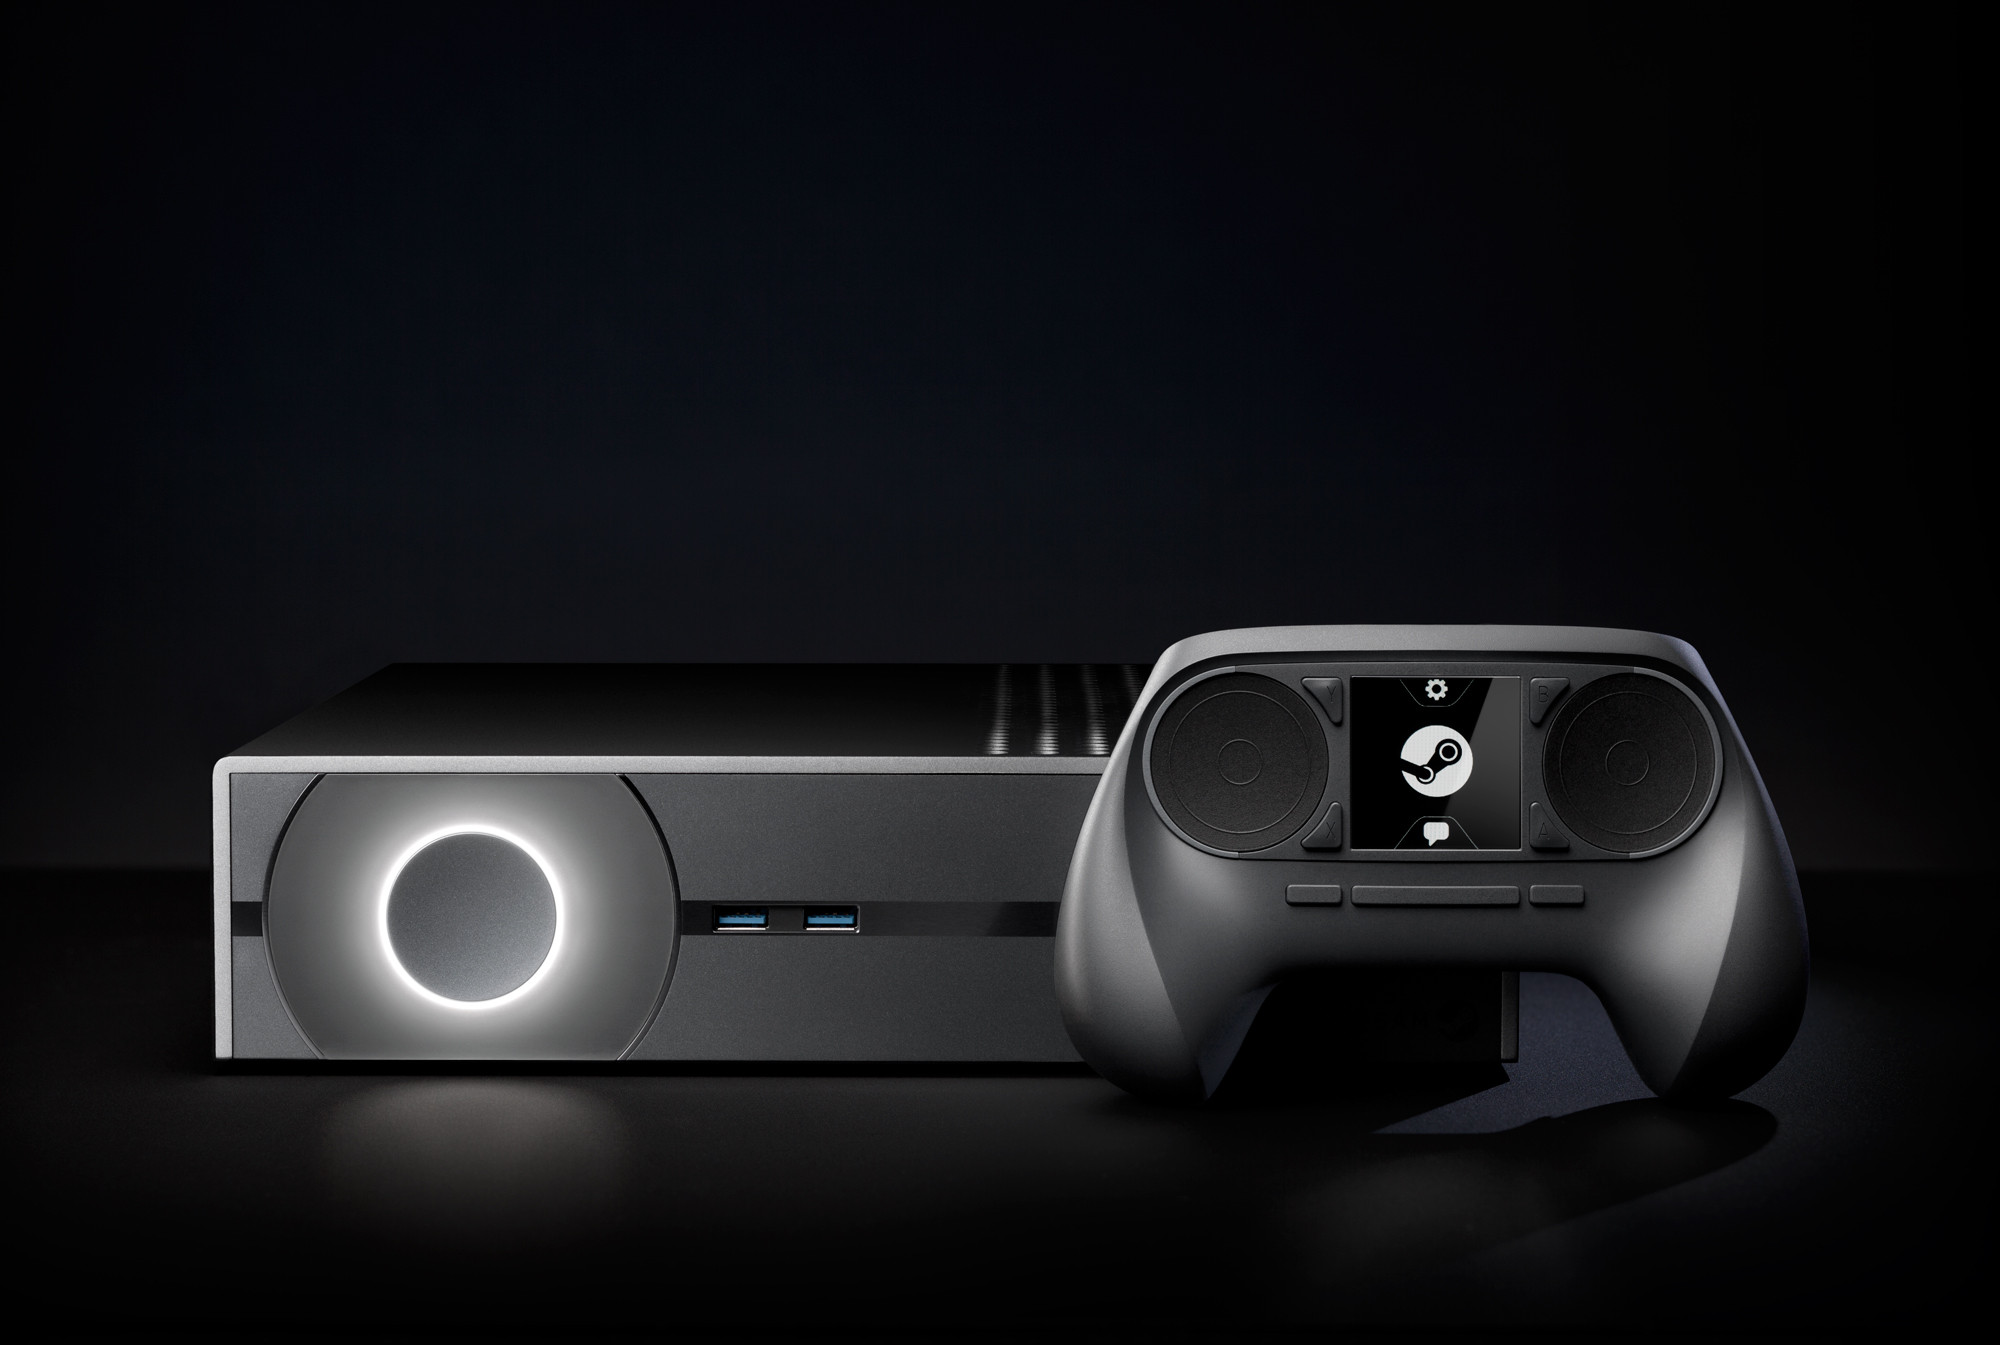 Steam Machines and Steam Controller shipping December 13th